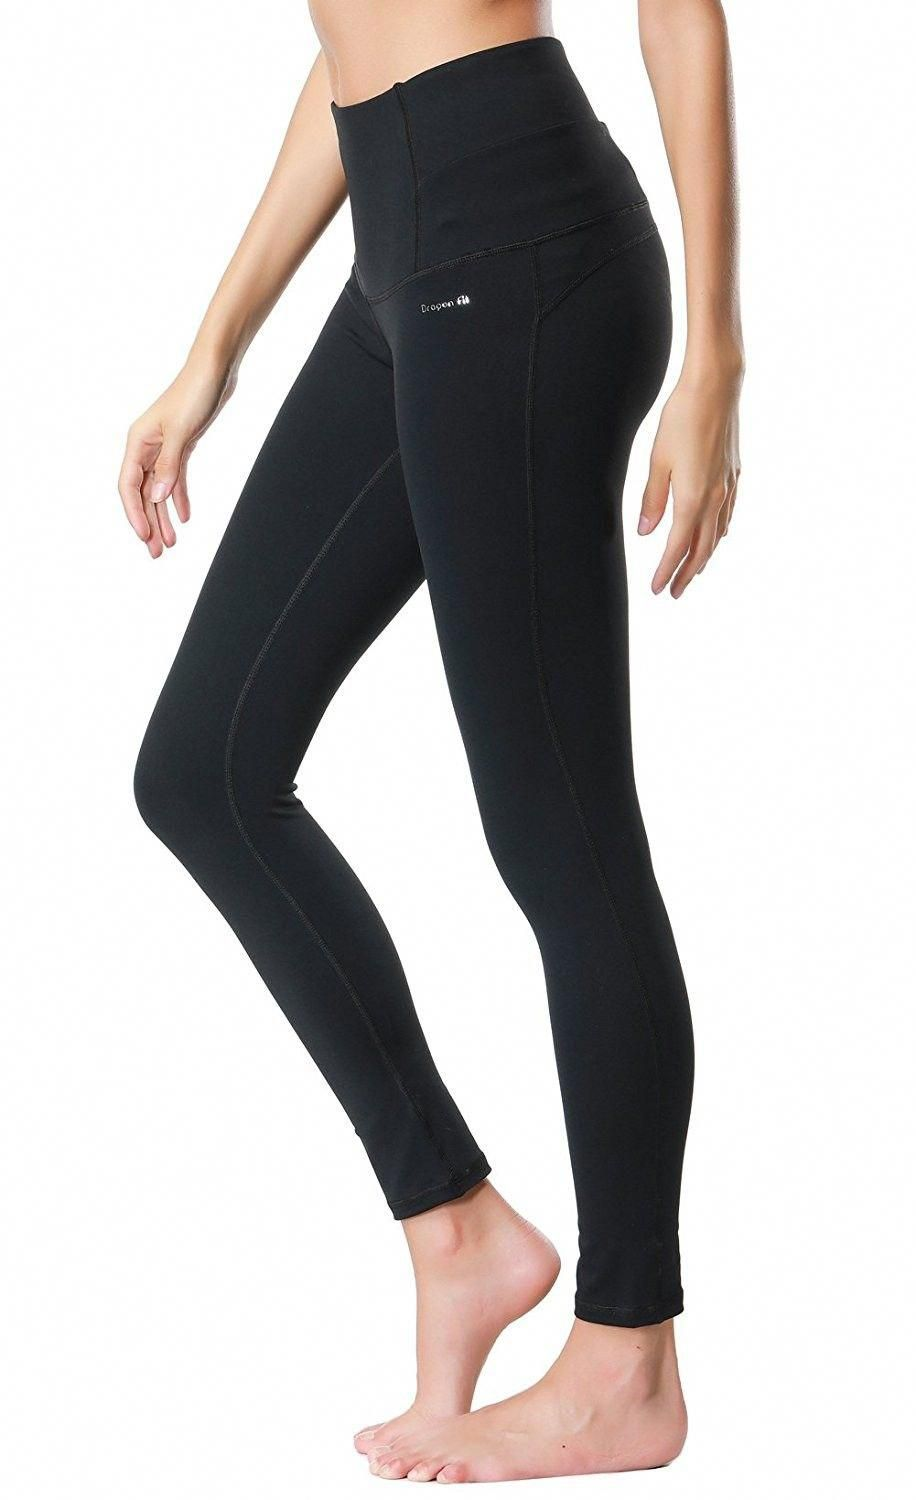 aebefd6be0 Women's Clothing, Active, Active Pants, Compression Yoga Pants Power  Stretch Workout Leggings With High Waist Tummy Control - 02black -  C3186RGEMA9 #women ...